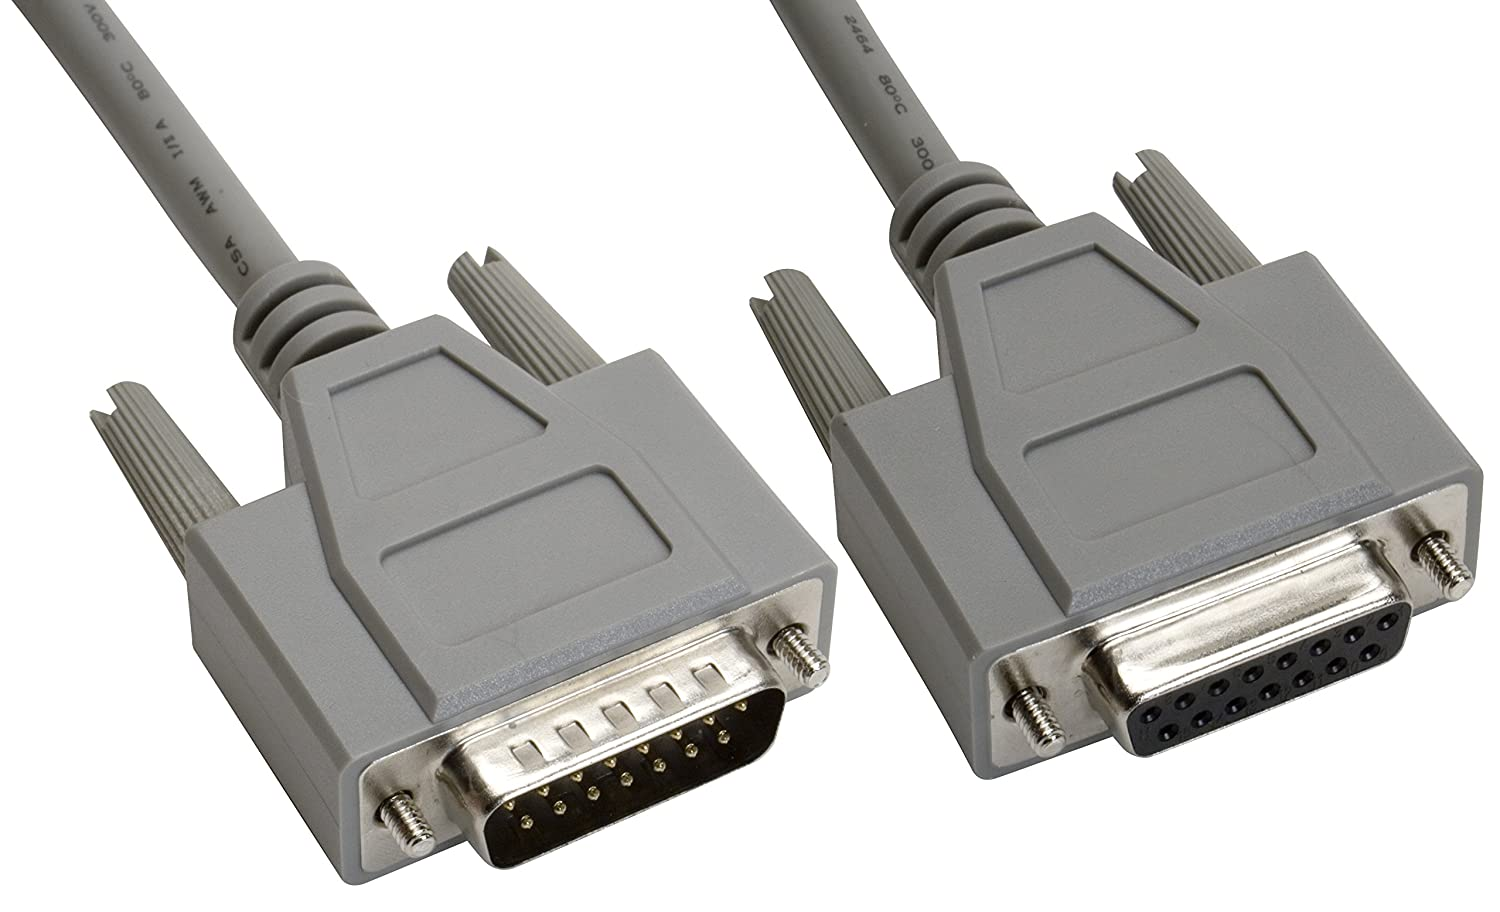 Animer and price revision Regular dealer Amphenol CS-DSDMDB15MF-002.5 15-Pin DB15 Shi Deluxe D-Sub Cable